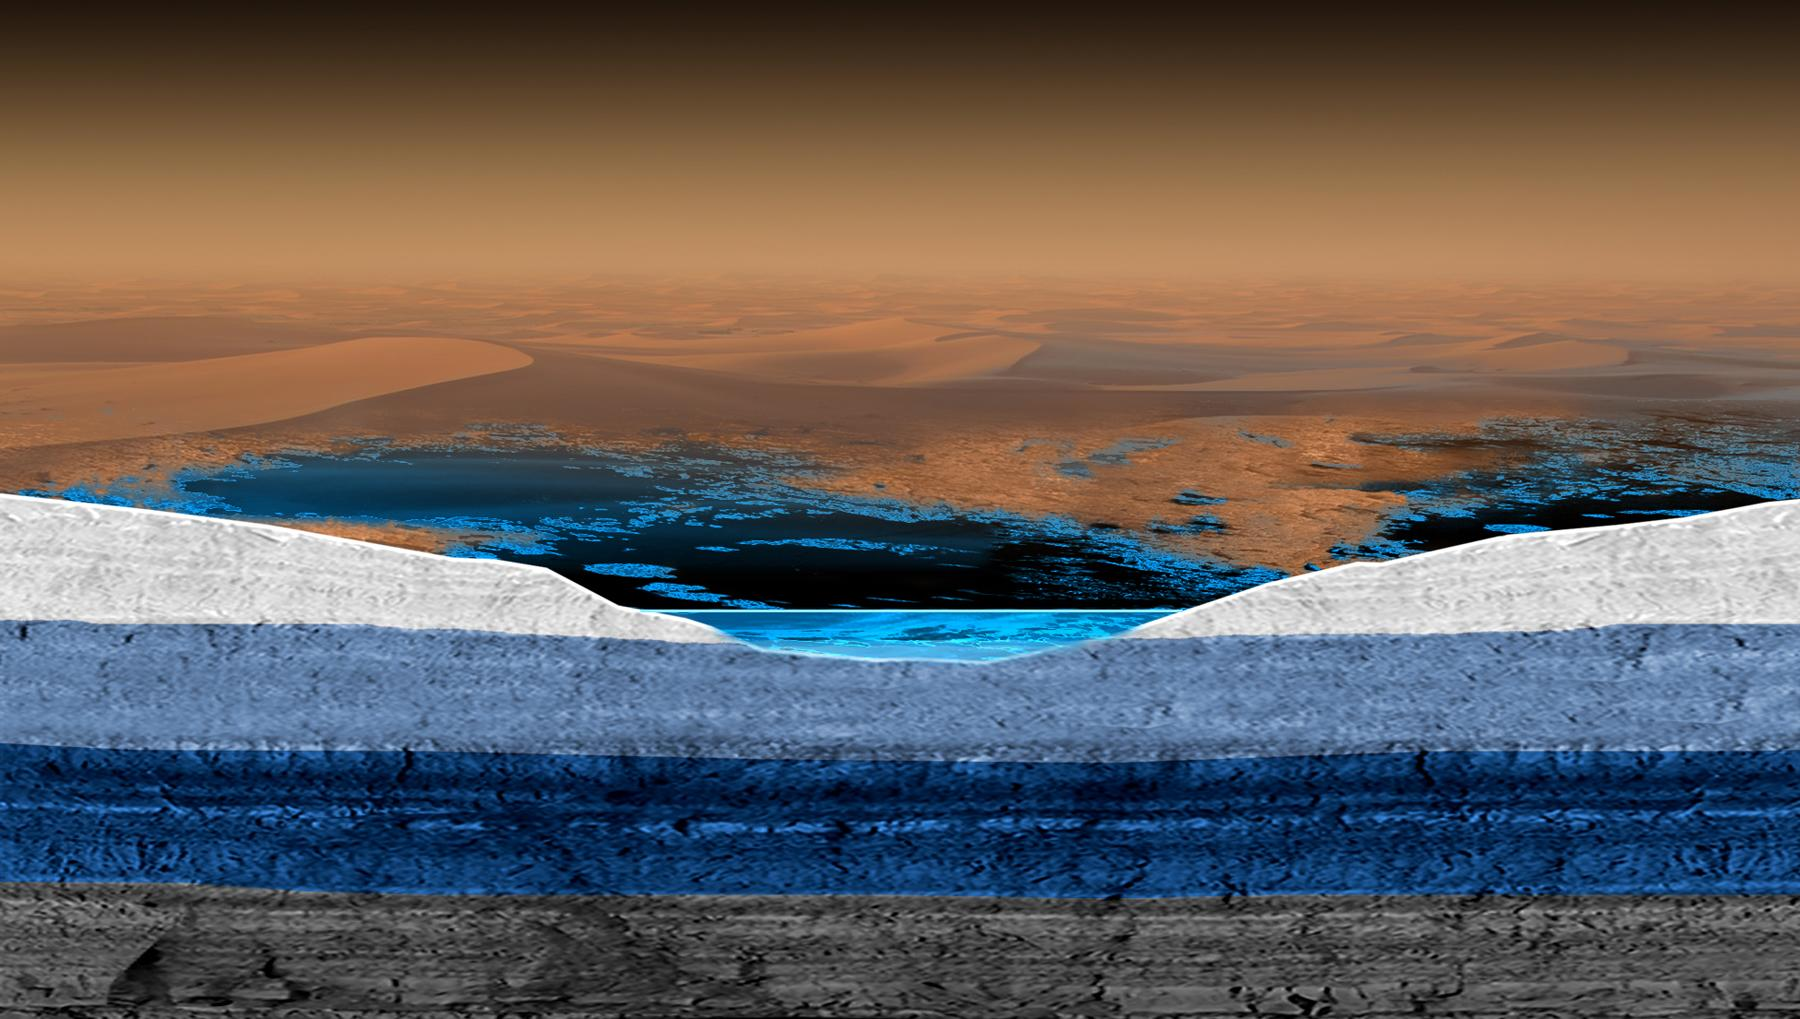 This artist's rendering shows a cross-section of the surface and subsurface of Saturn's moon Titan, with a possible model for the structure of underground liquid reservoirs there.